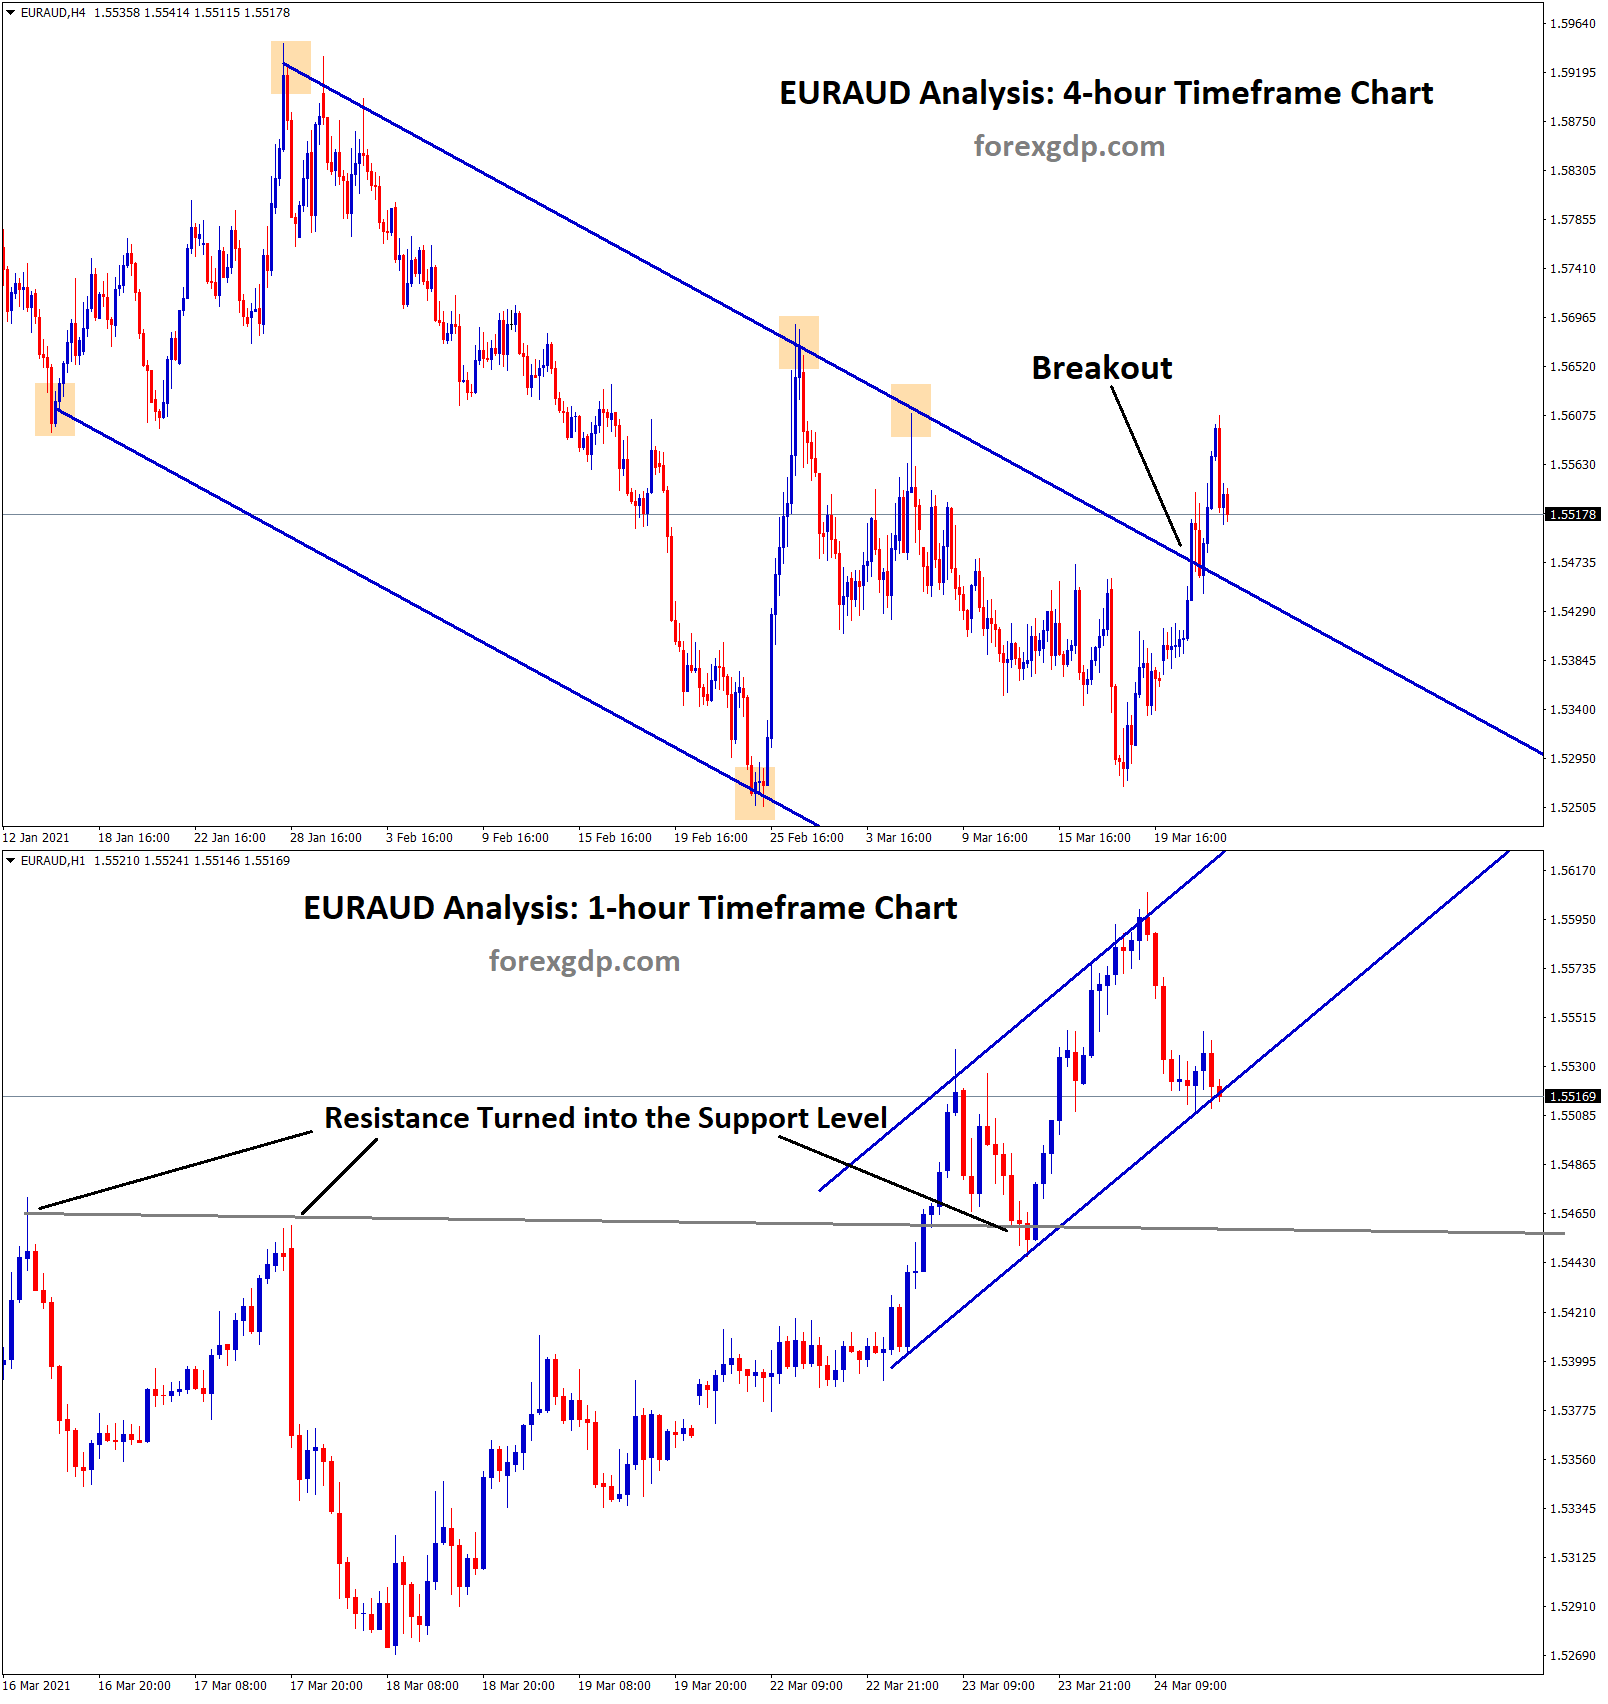 breakout at the top of the downtrend line